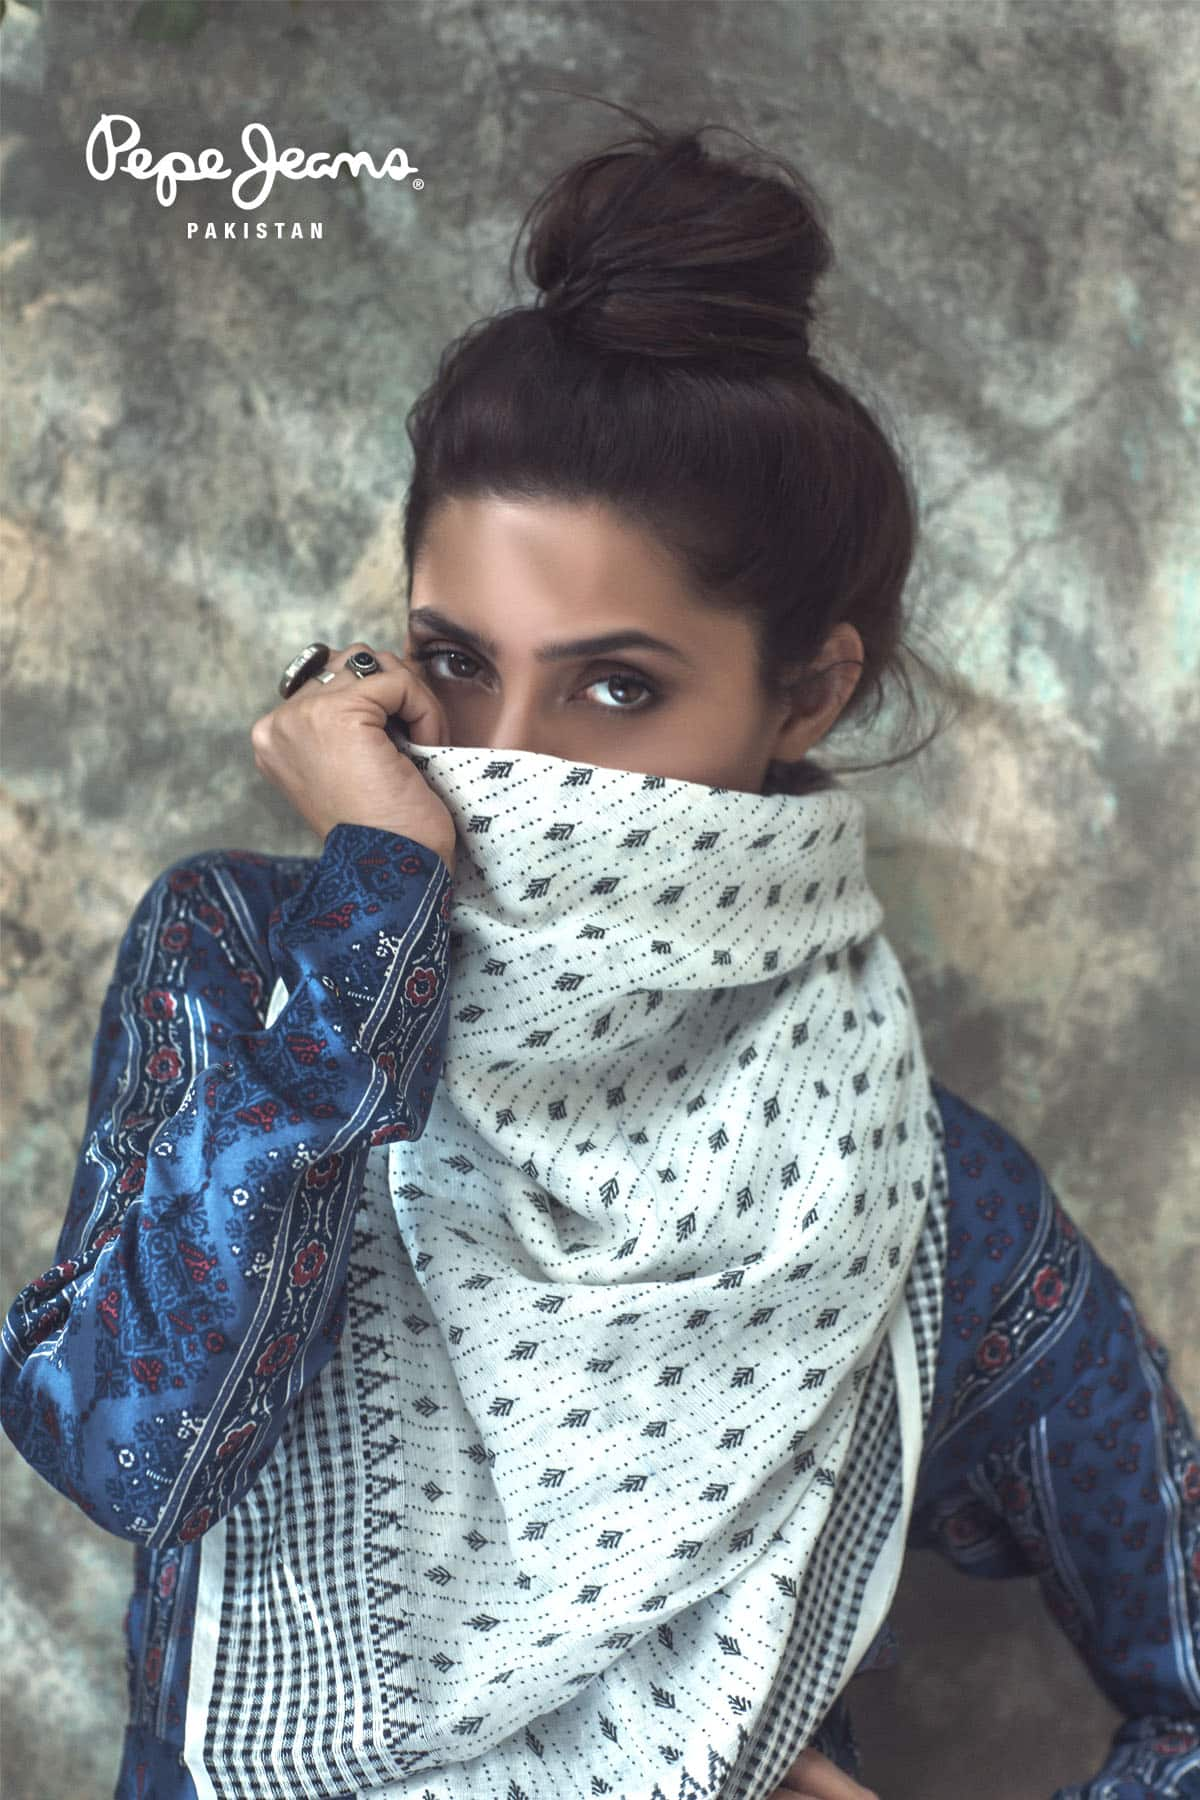 Mahira Khan for Pepe Jeans Pakistan Winter 2015 Campaign – #MKLovesPepe (14)